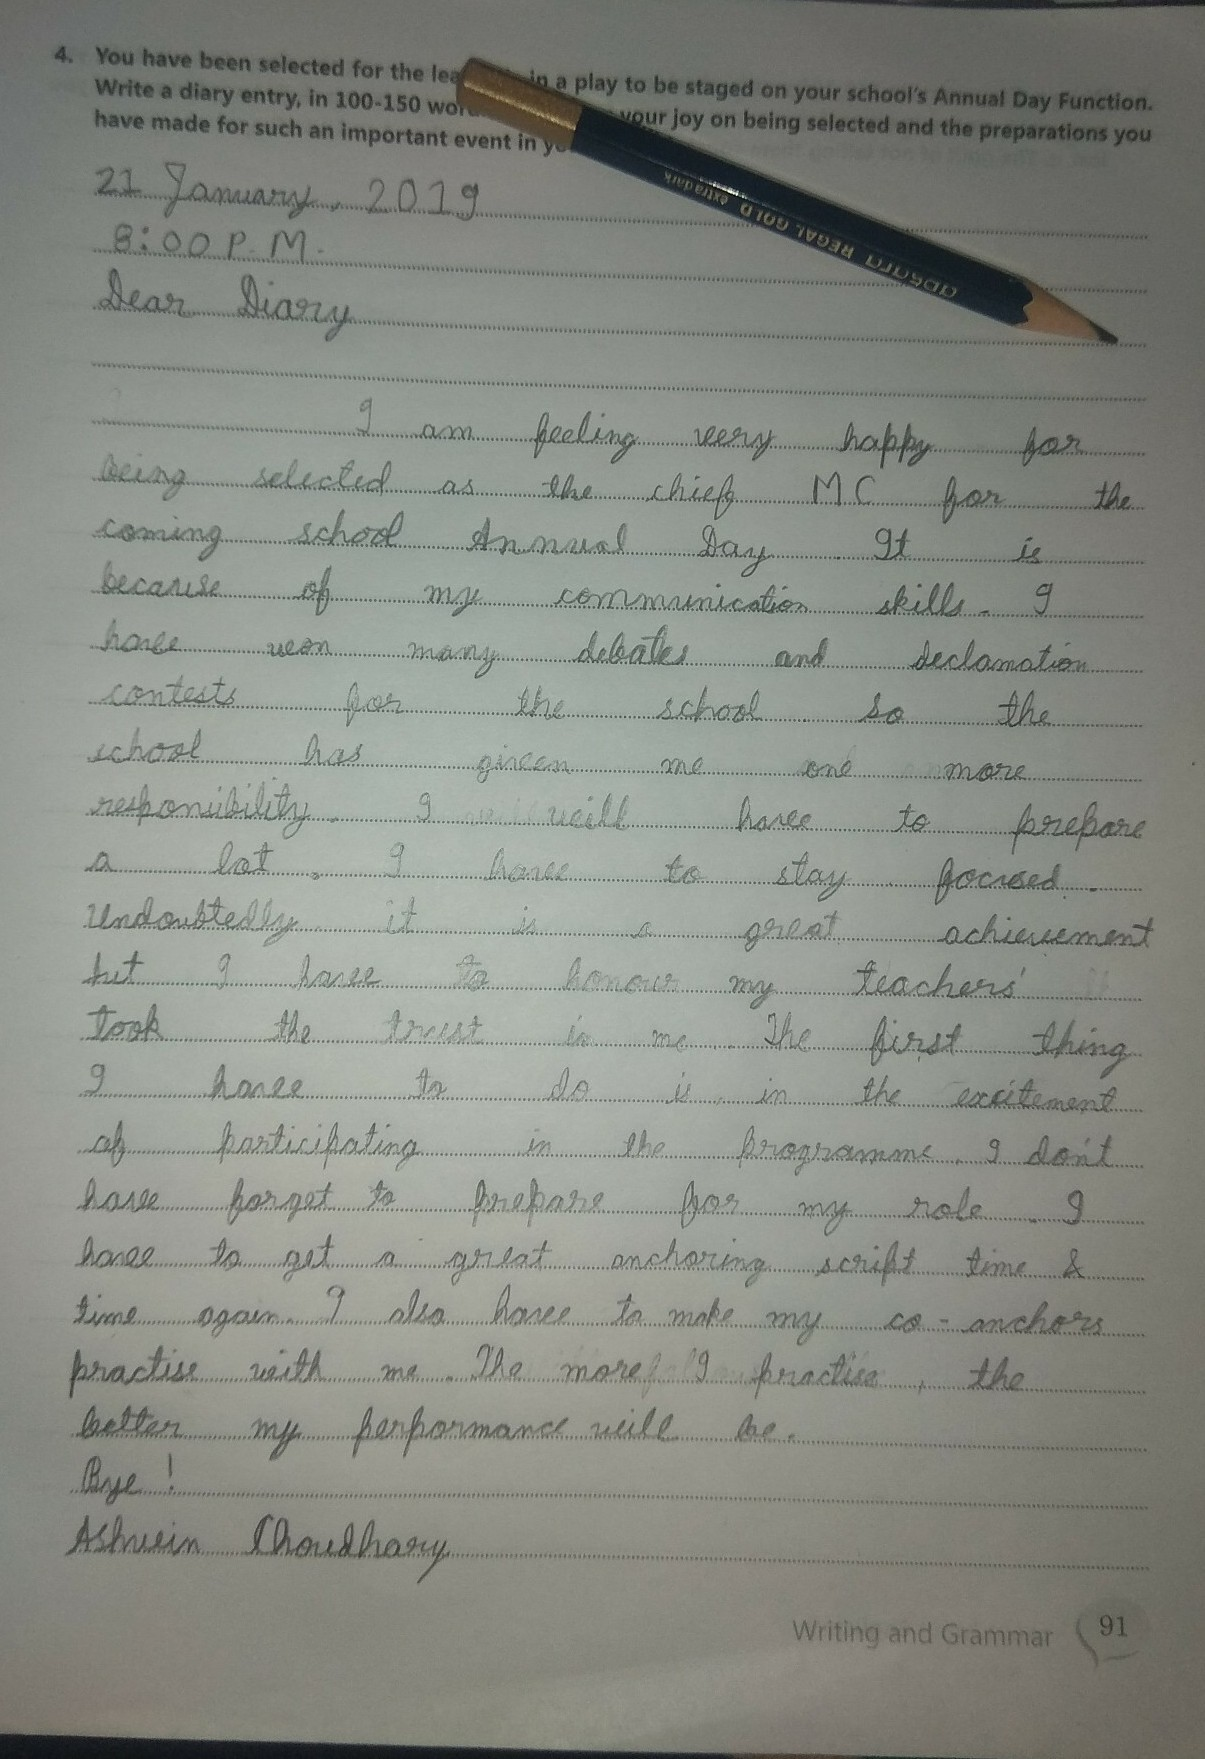 diary entry you are selected to play lead role in annual day